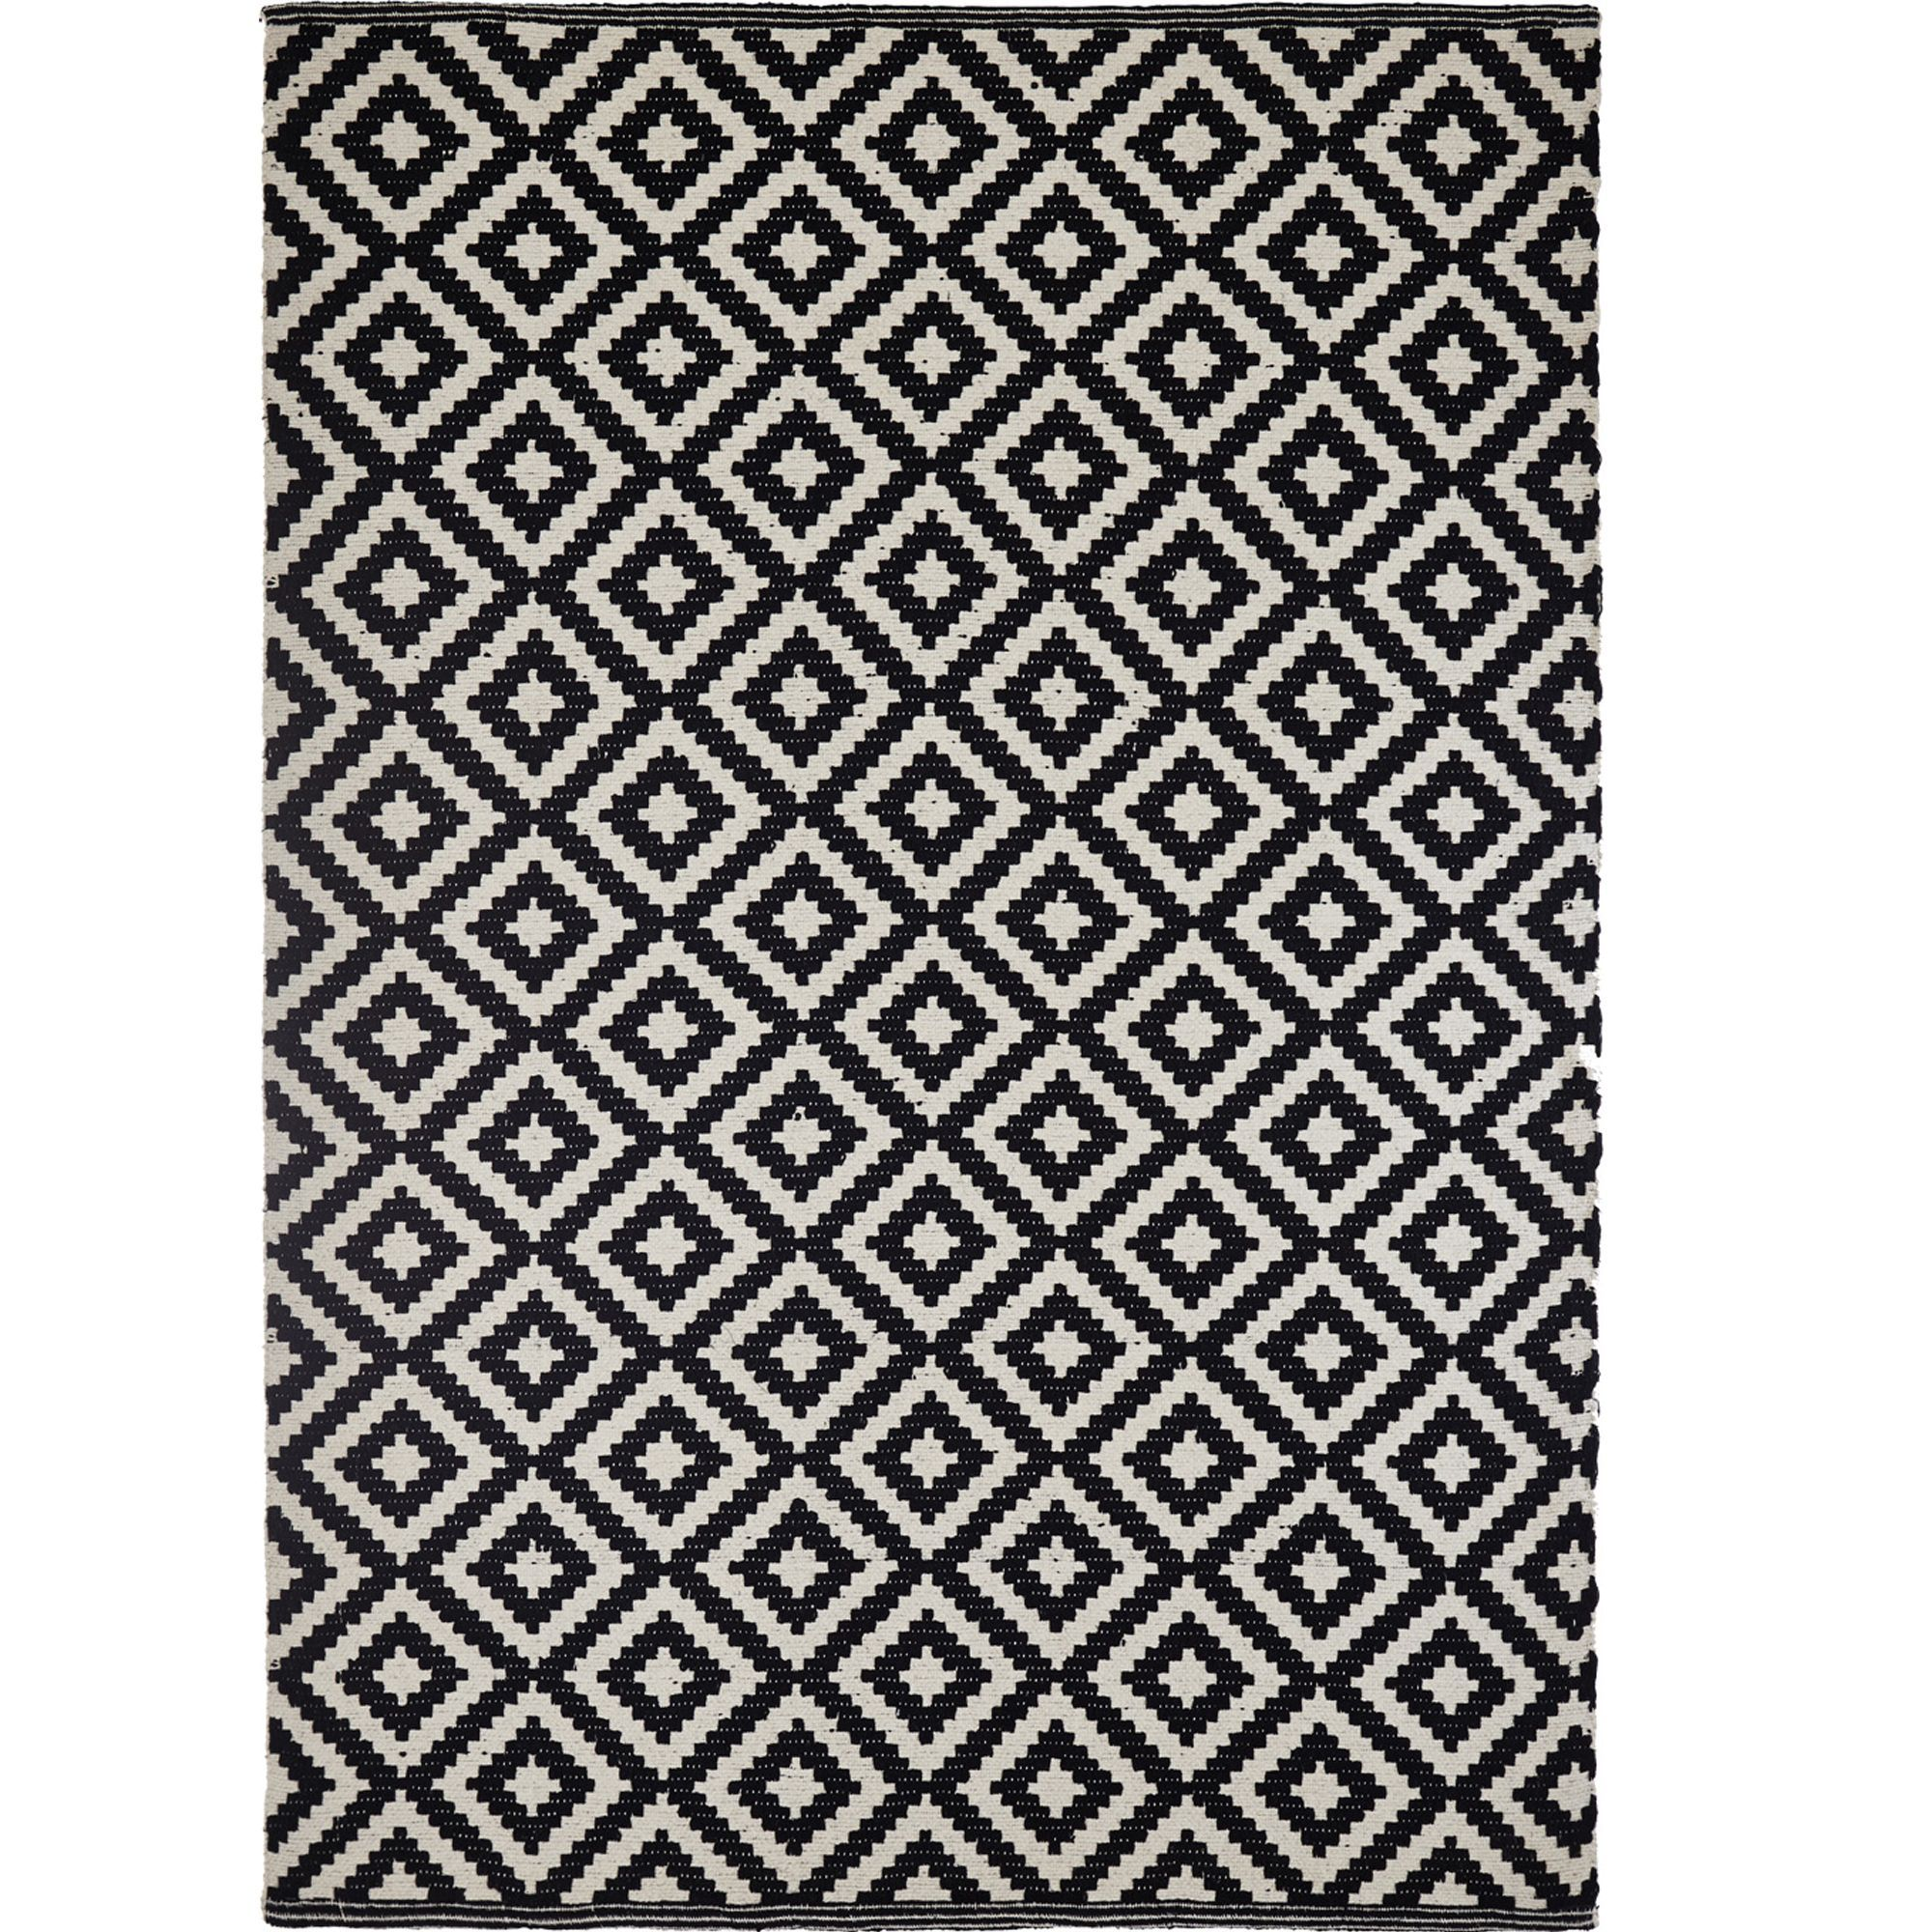 Colours Harrietta Black White Geometric Rug L 2 3m W 1 6 M